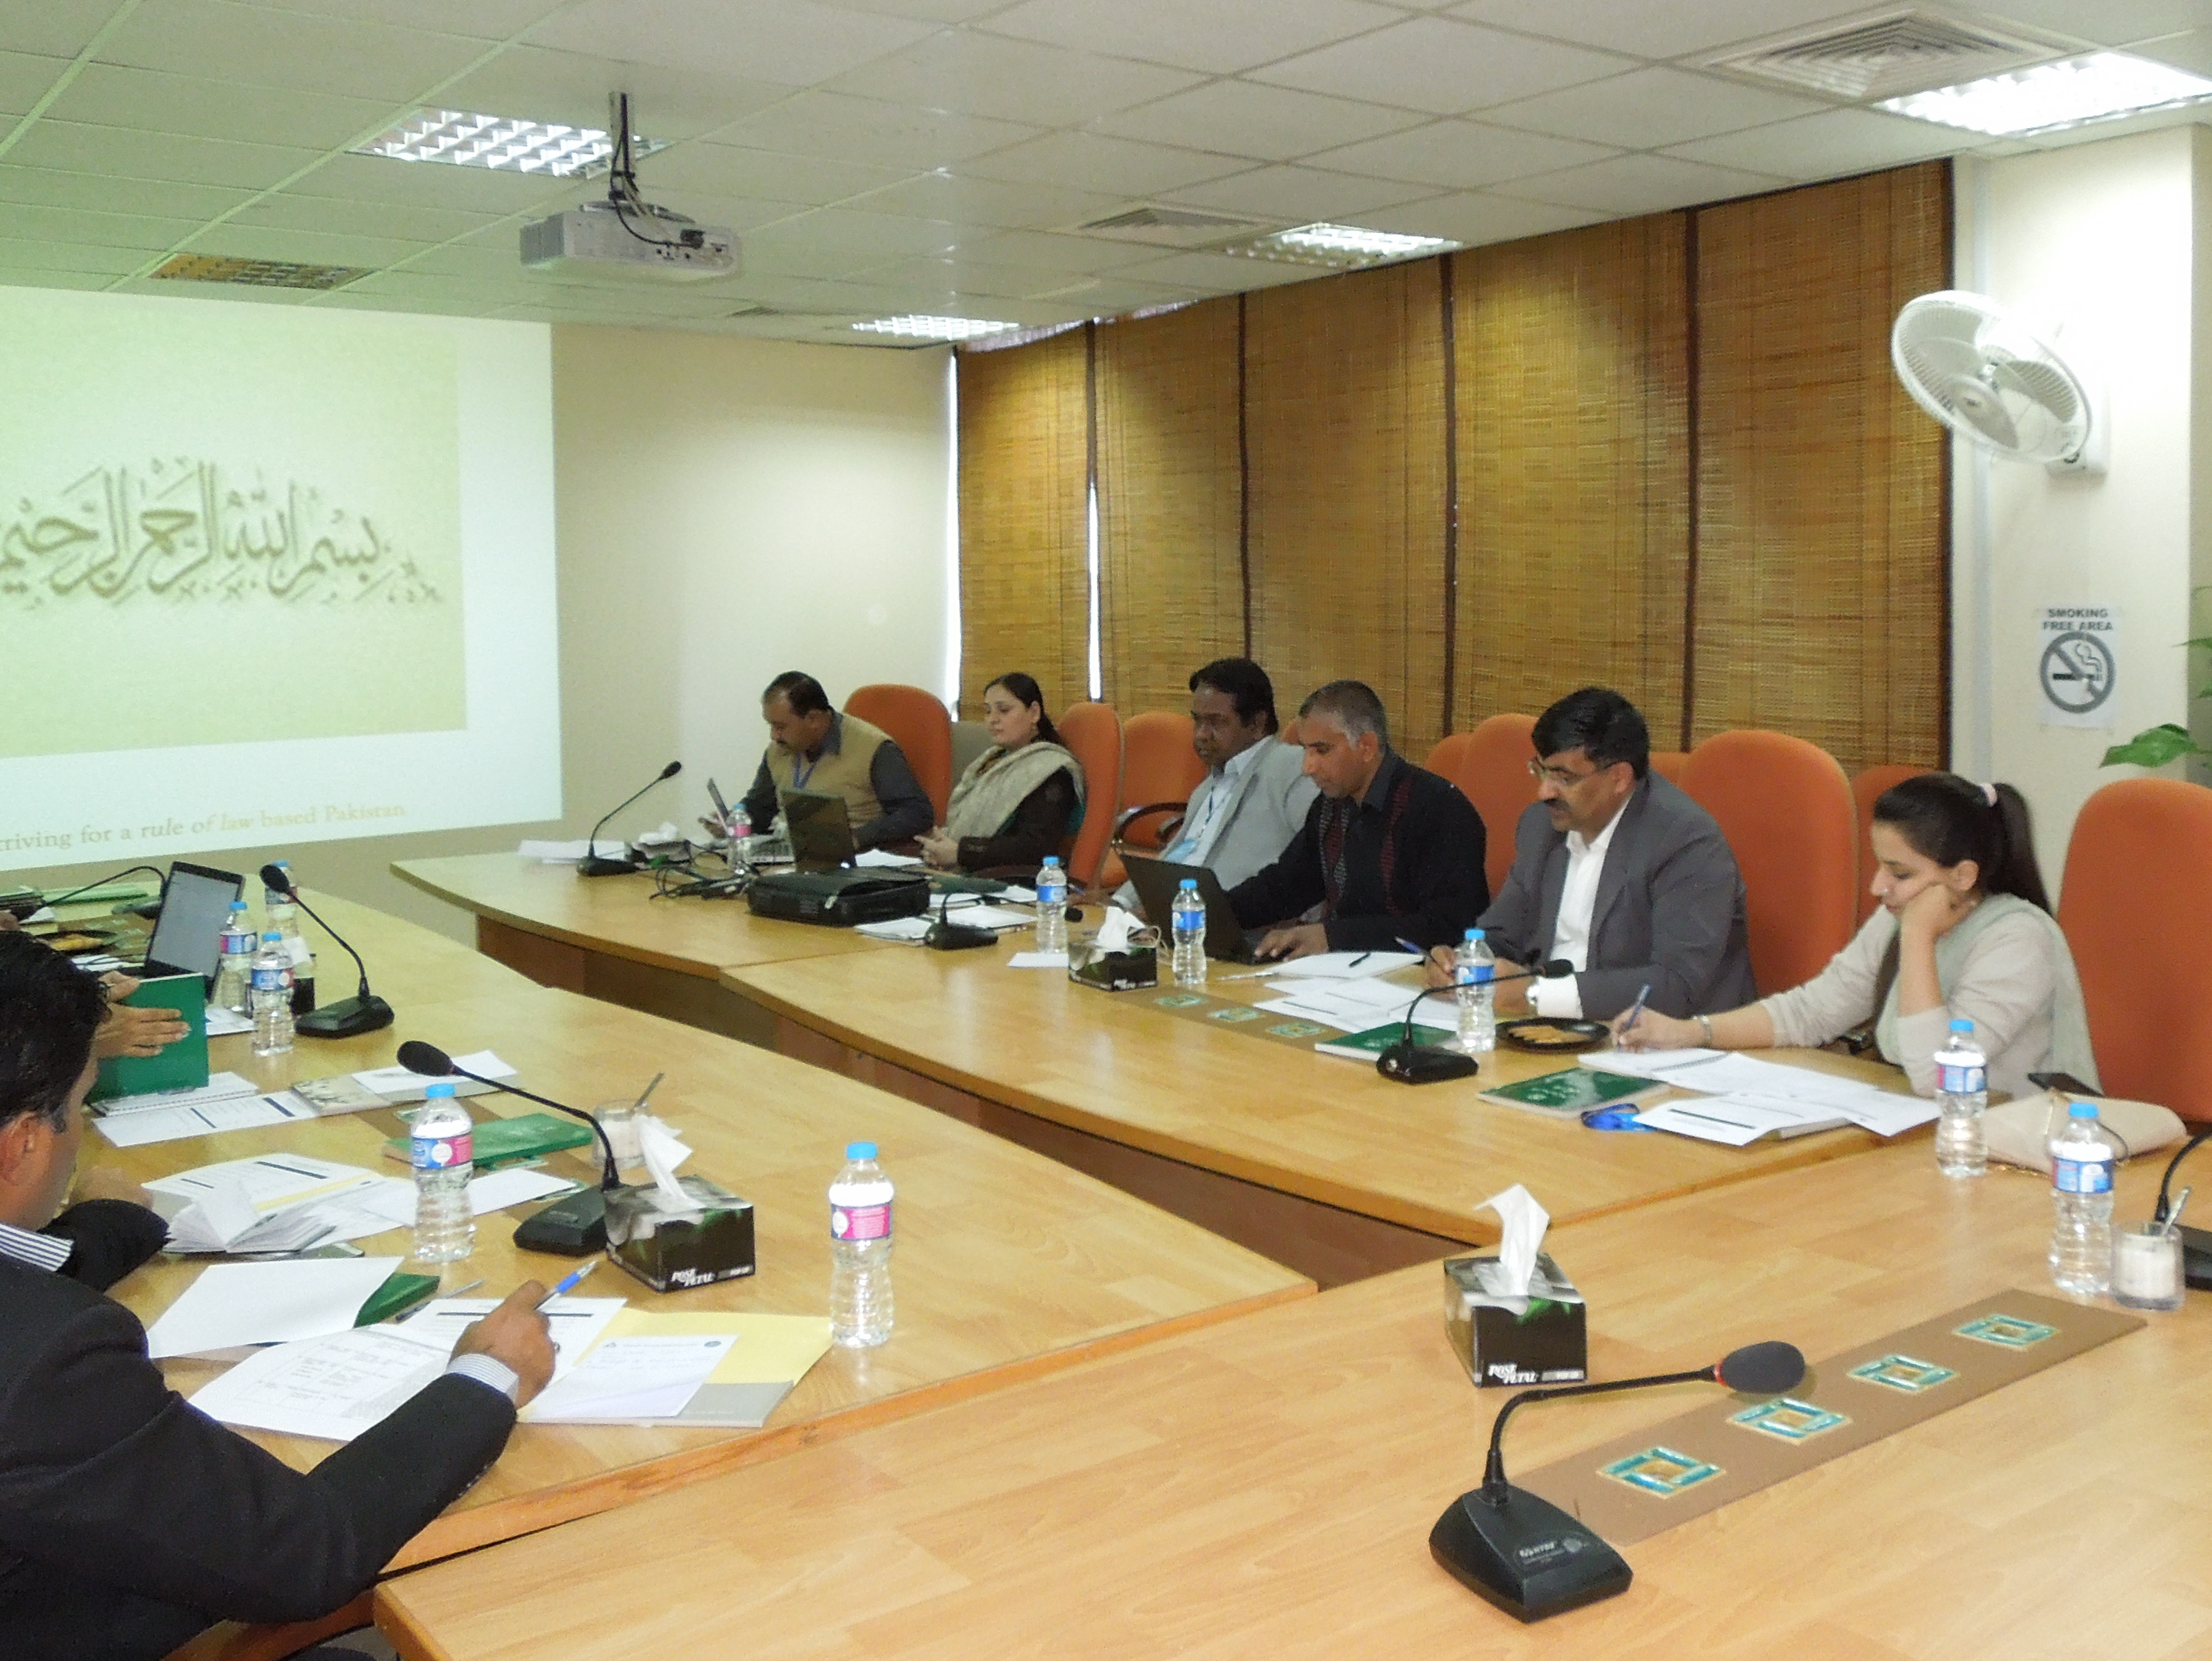 Project Orientation Session at PPAF